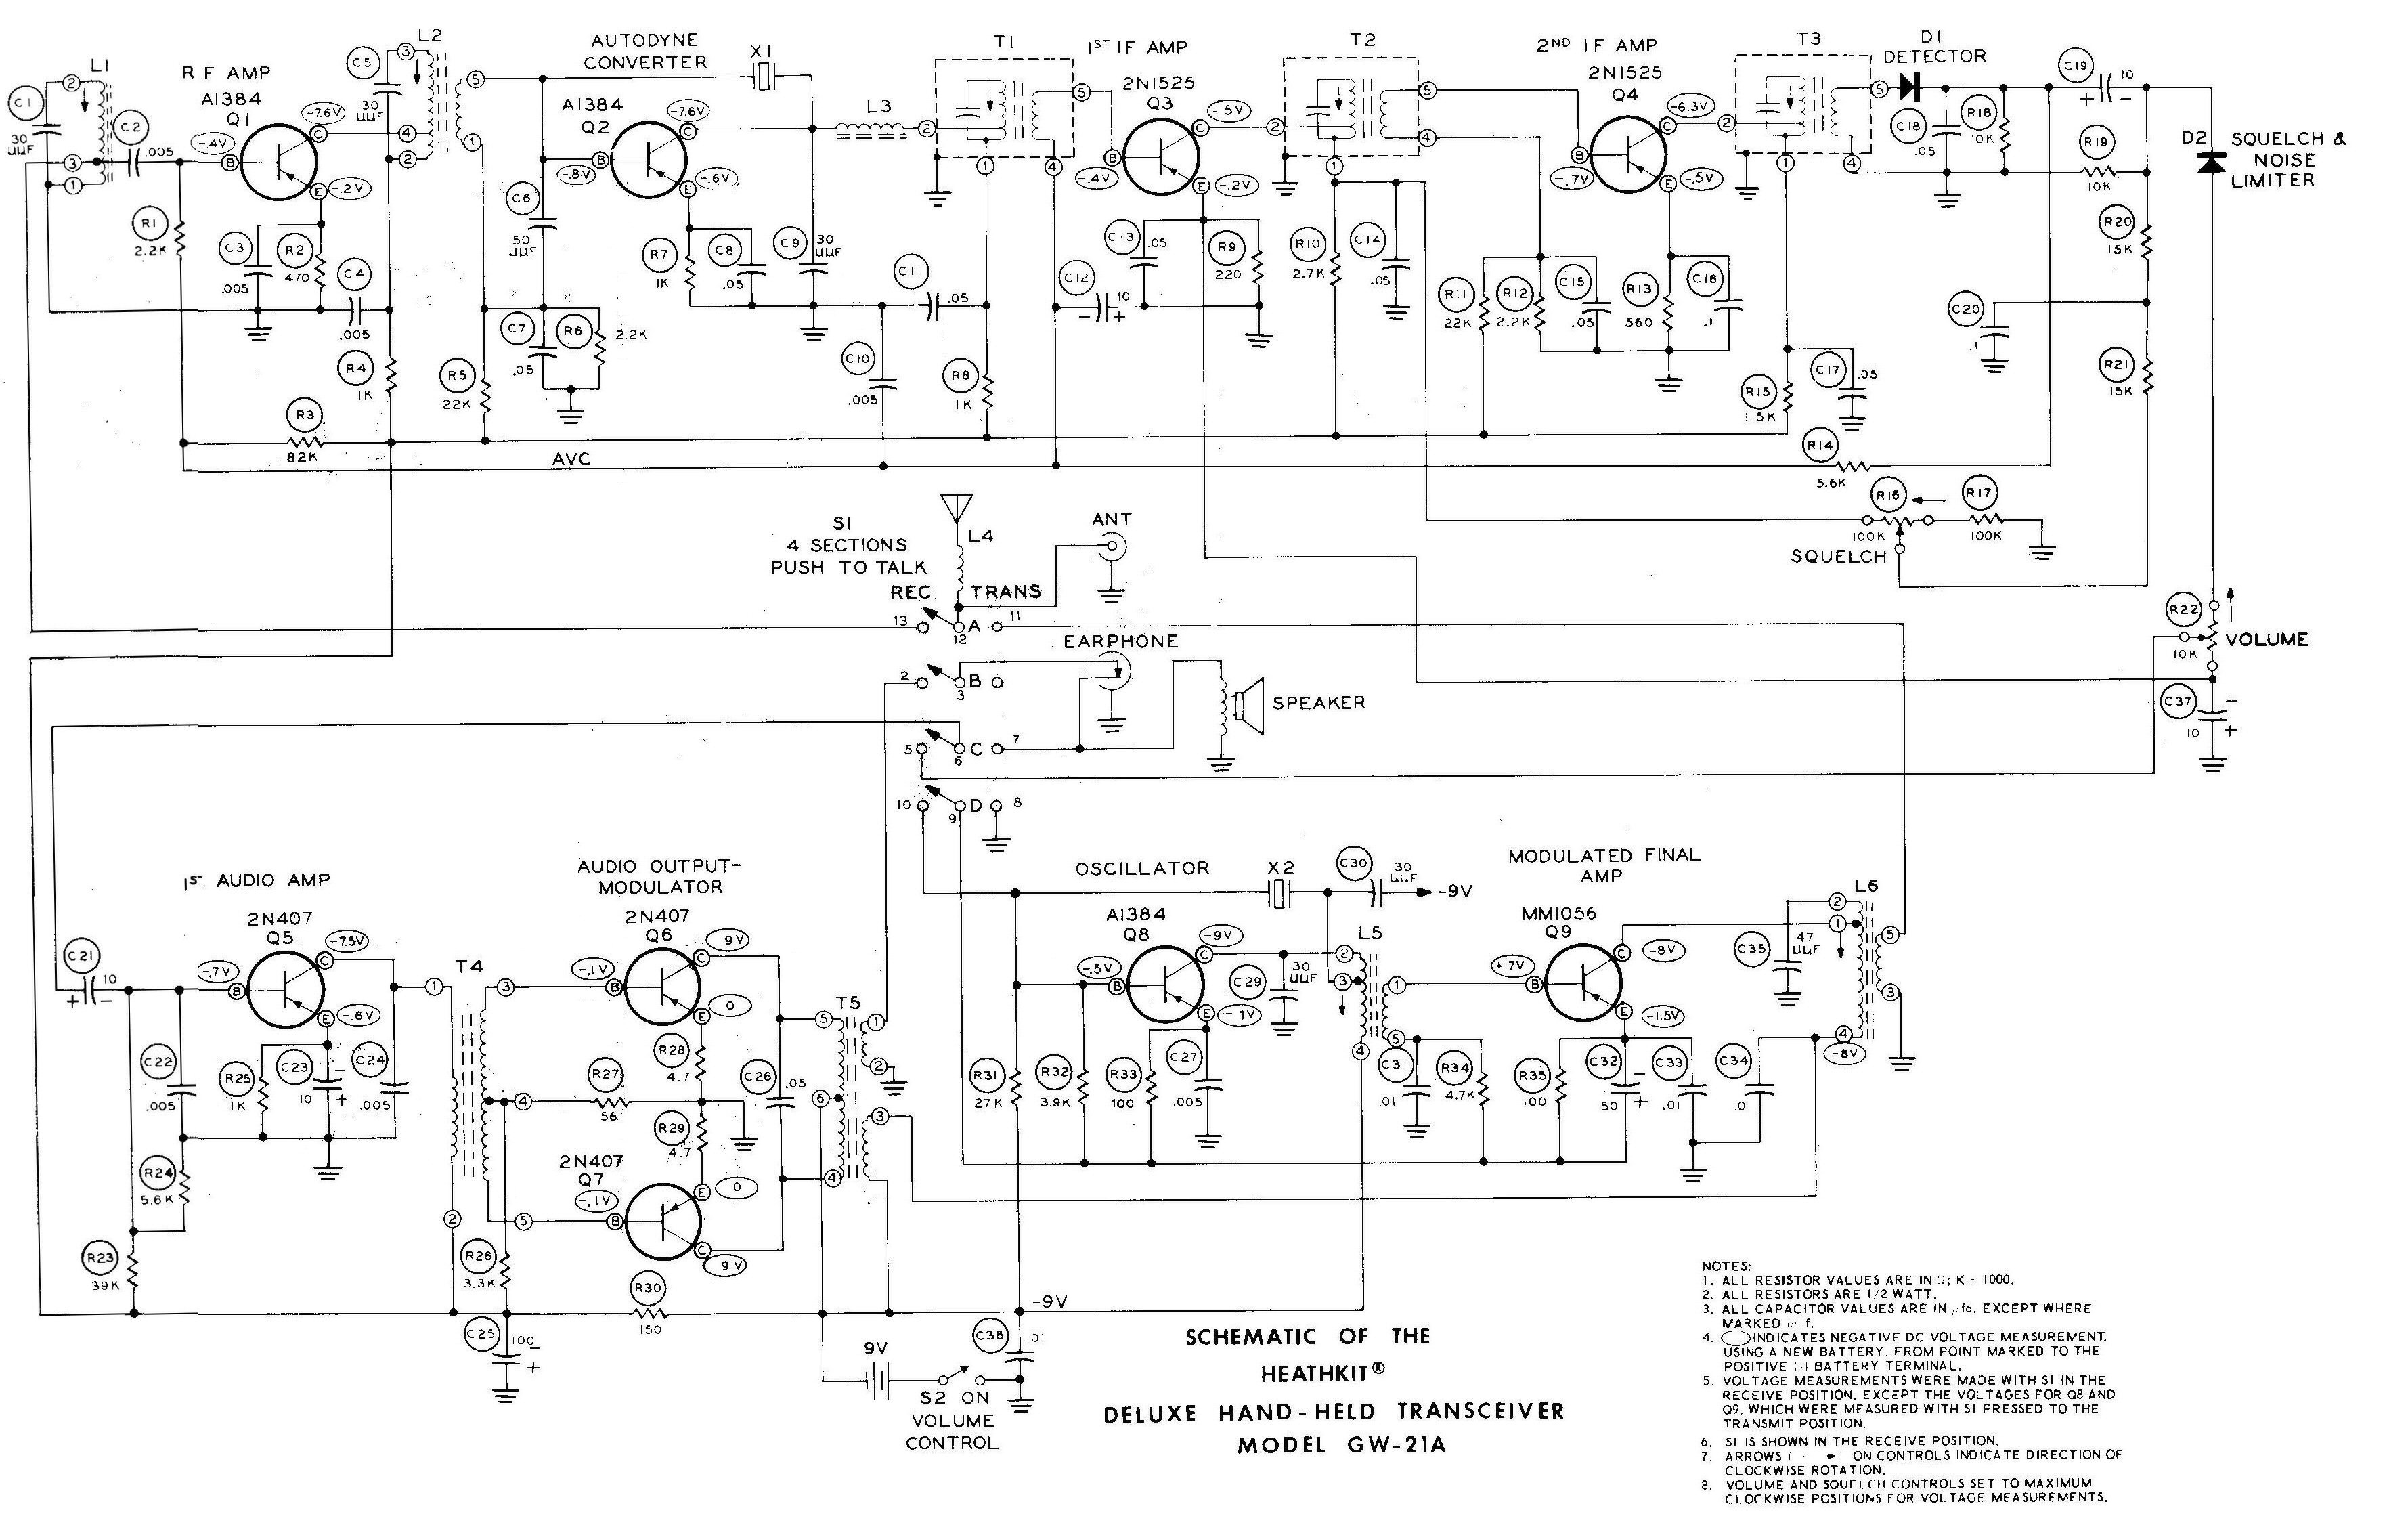 Ham S Wiring Diagrams | Wiring Library Ham Radio Wiring Diagram on ham radio radio, ham radio speakers, ham radio antenna, ham radio system, ham radio switch, ham radio plug, ham radio lights, ham radio relay, ham radio brochure, ham radio cable, ham radio parts diagram, ham radio equipment diagram, ham radio timer, ham radio guide, ham radio help, ham radio cover, ham radio circuit diagram, ham radio manual, ham radio parts catalog, ham radio block diagram,